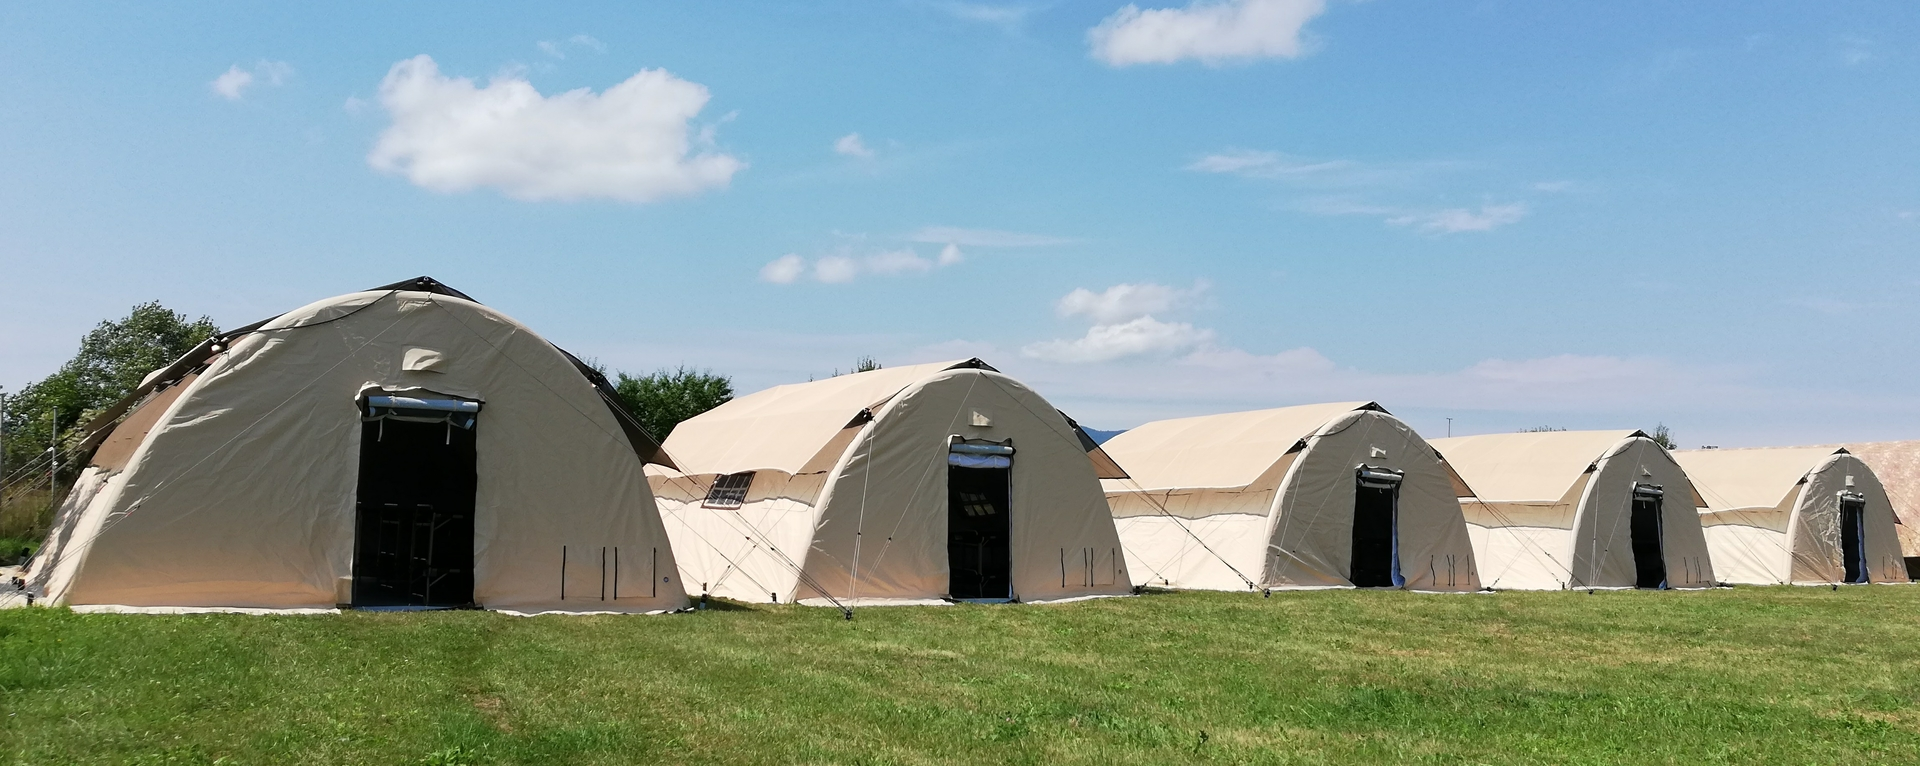 NIXUS PRO Emergency Medical Tents - Triage Tents, Isolation Tents, Hospital Tents